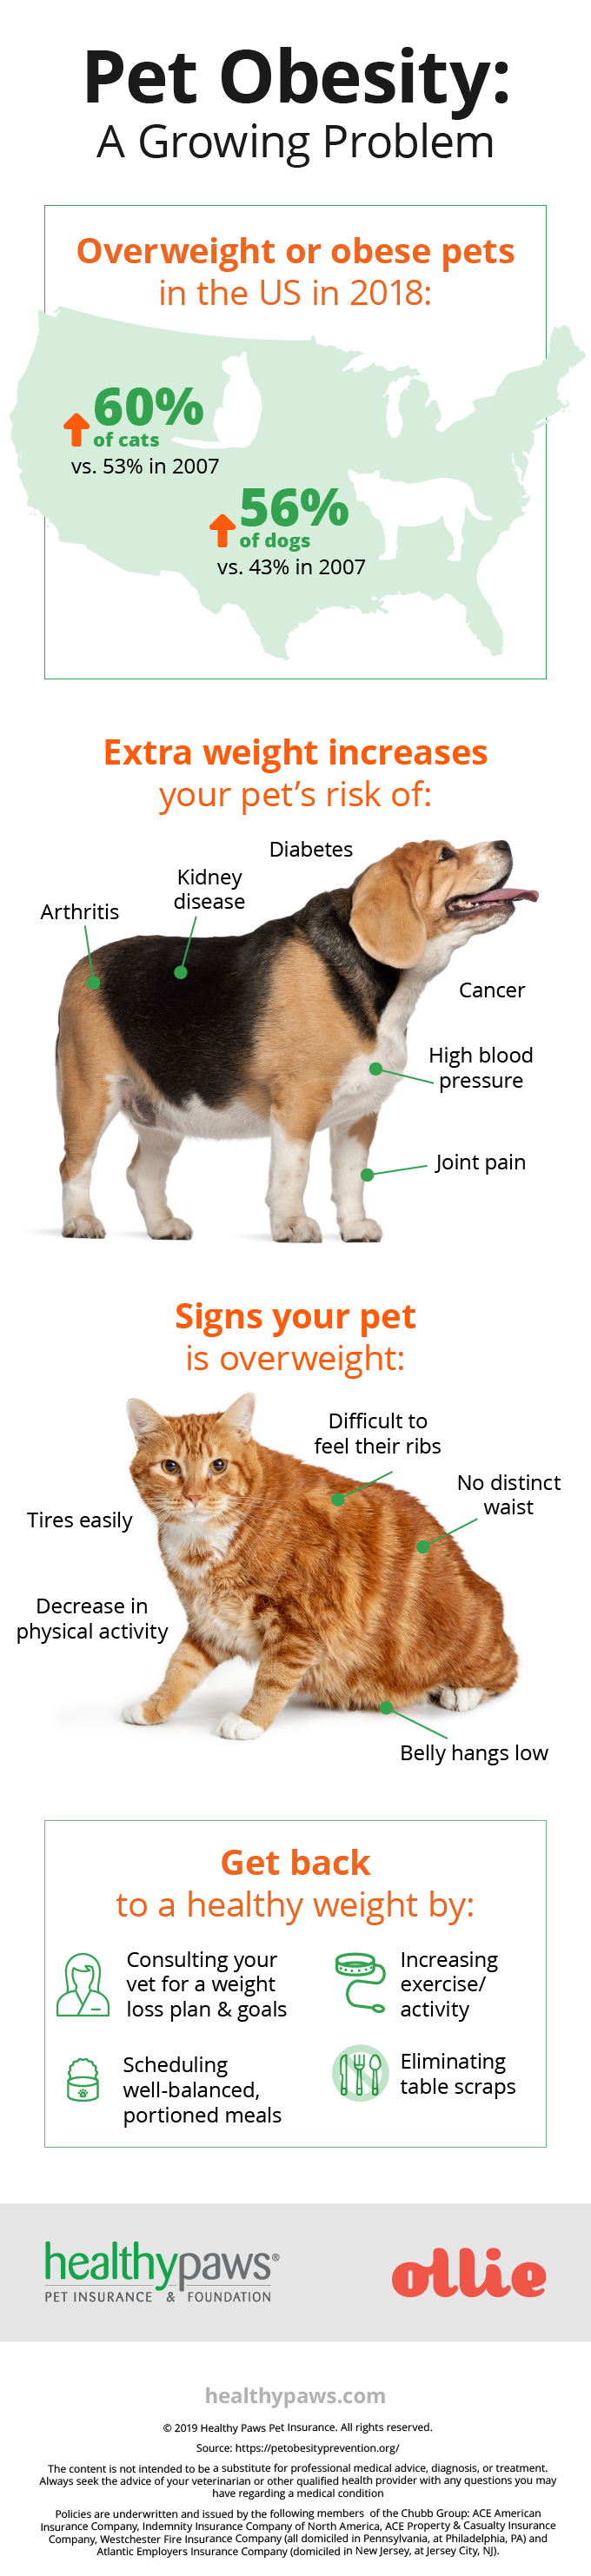 dog and cat obesity infrographic